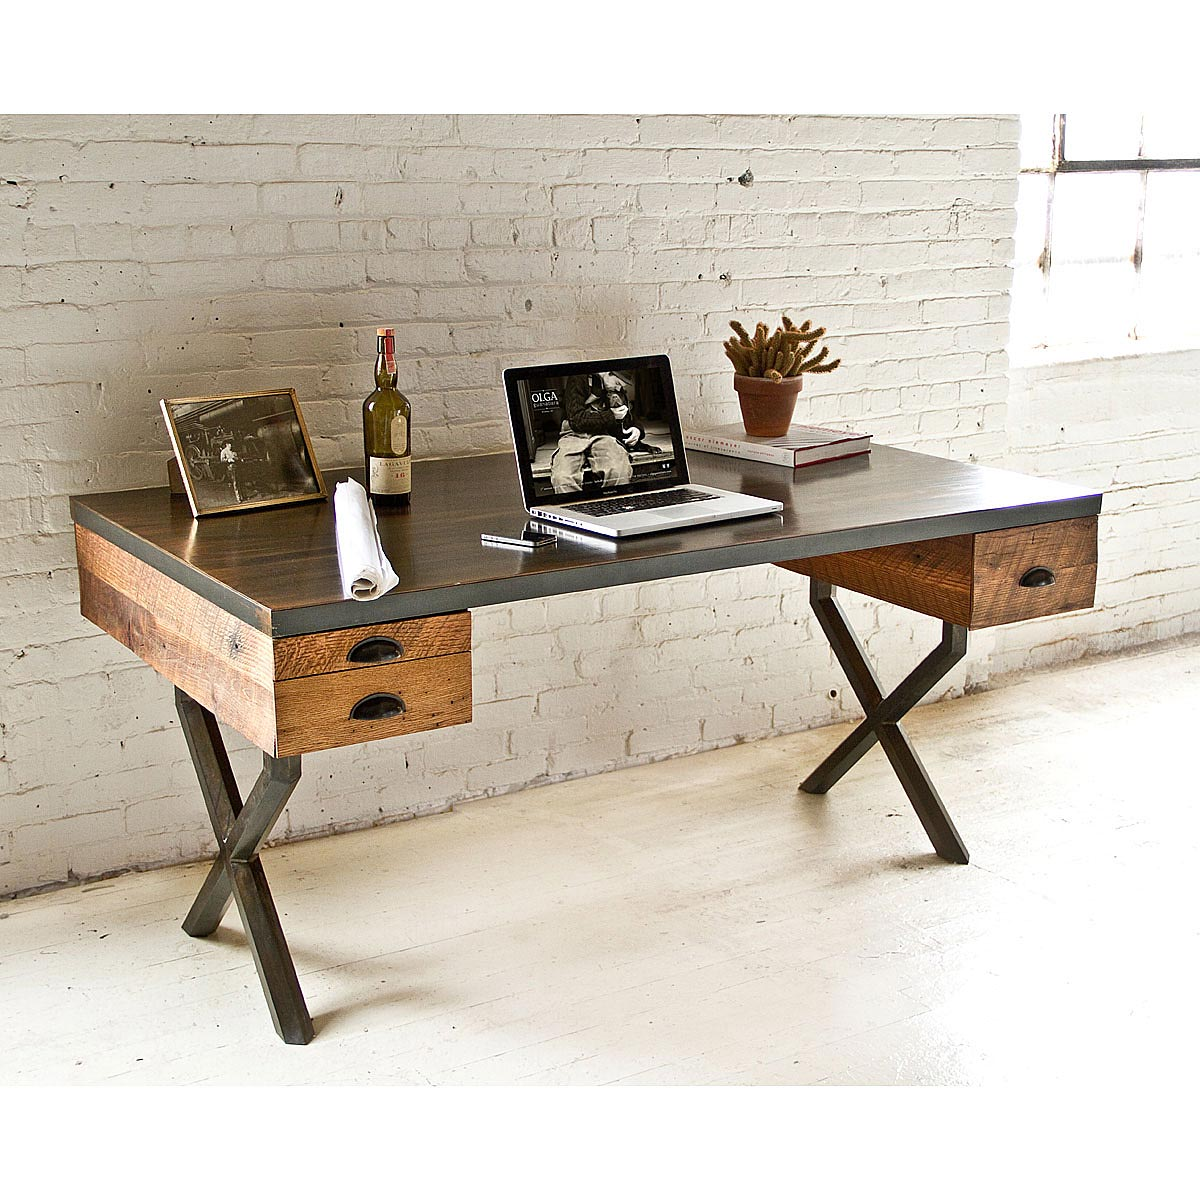 Walter Desk Wood Metal Work Table UncommonGoods - Reclaimed wood work table